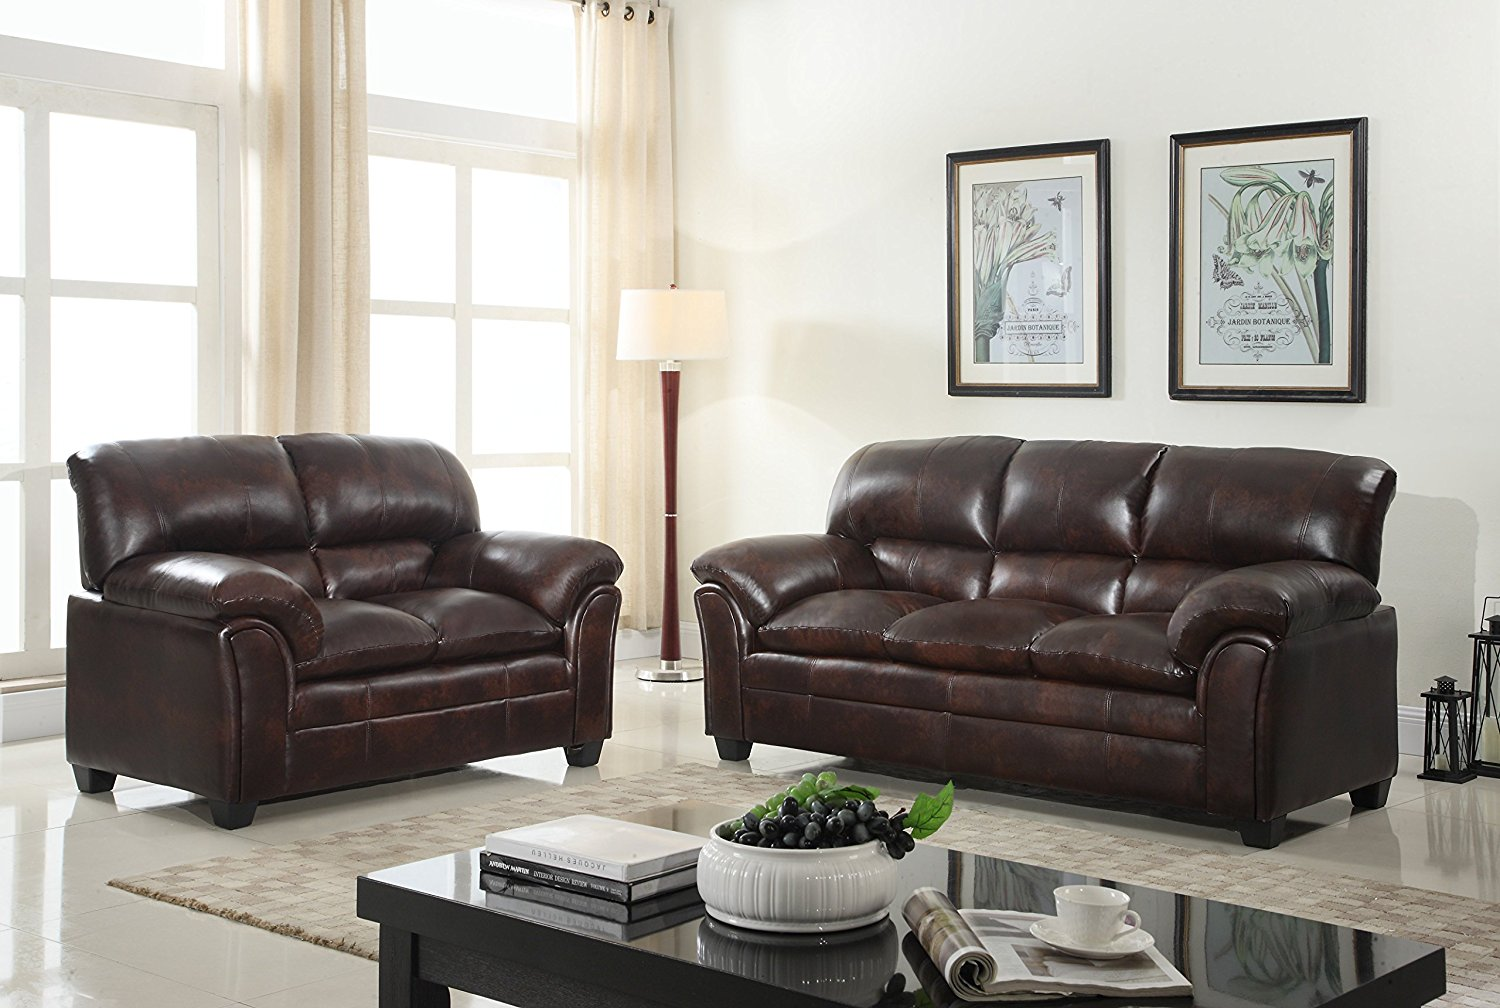 GTU Furniture New Faux Leather Sofa and Loveseat Living Room Furniture Set (Brown)